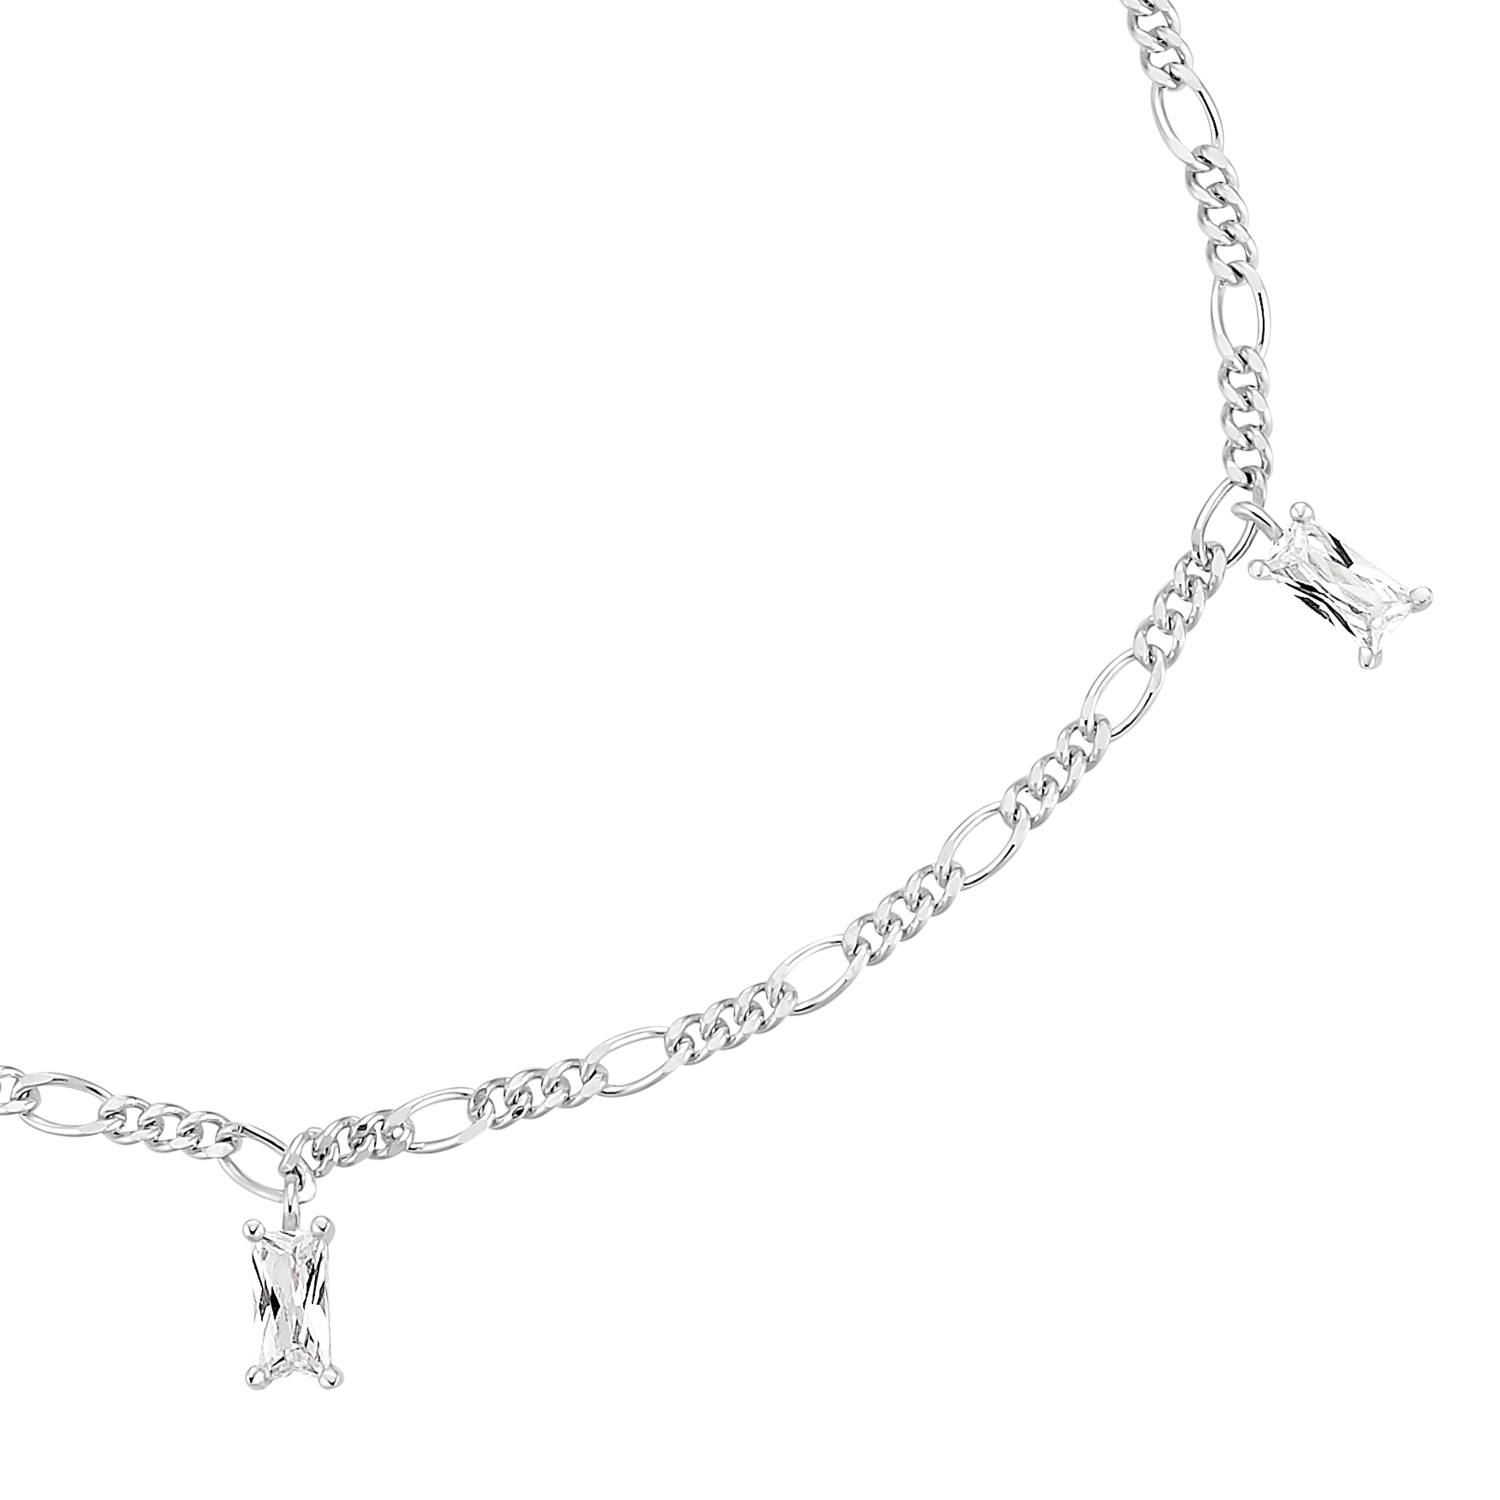 BAGUETTE STONES ARMBAND SILBER